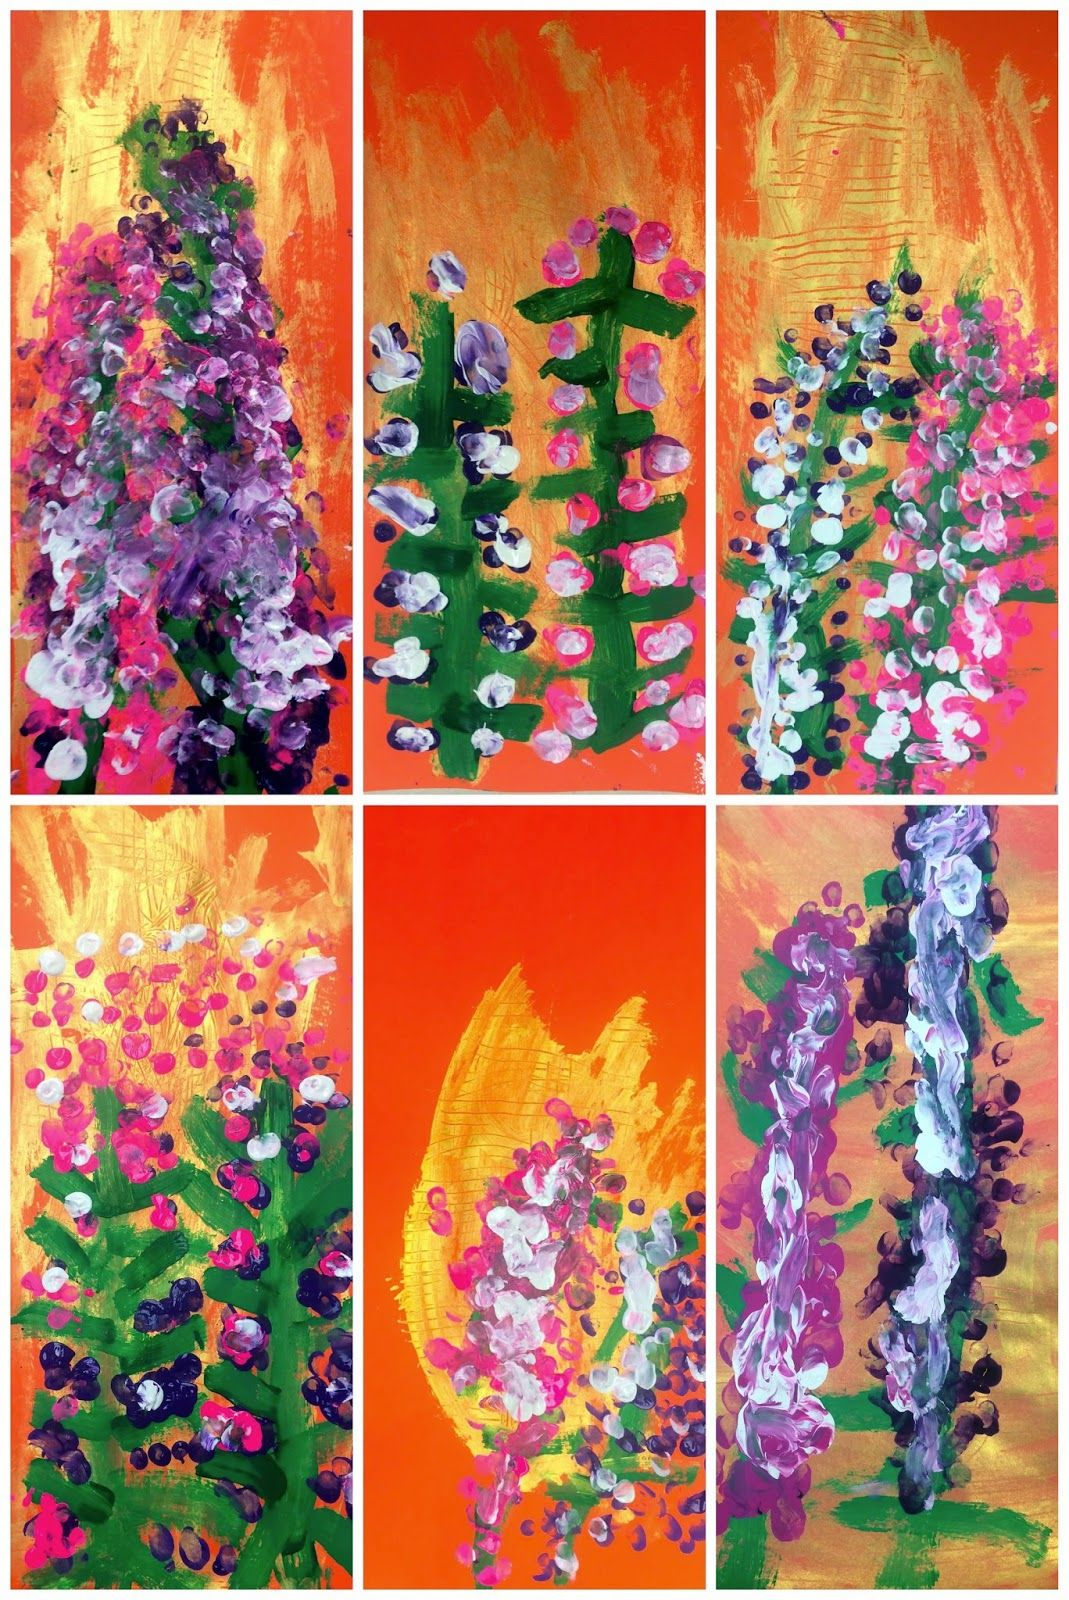 Lupine project | Plants | Elementary art, Art lessons elementary